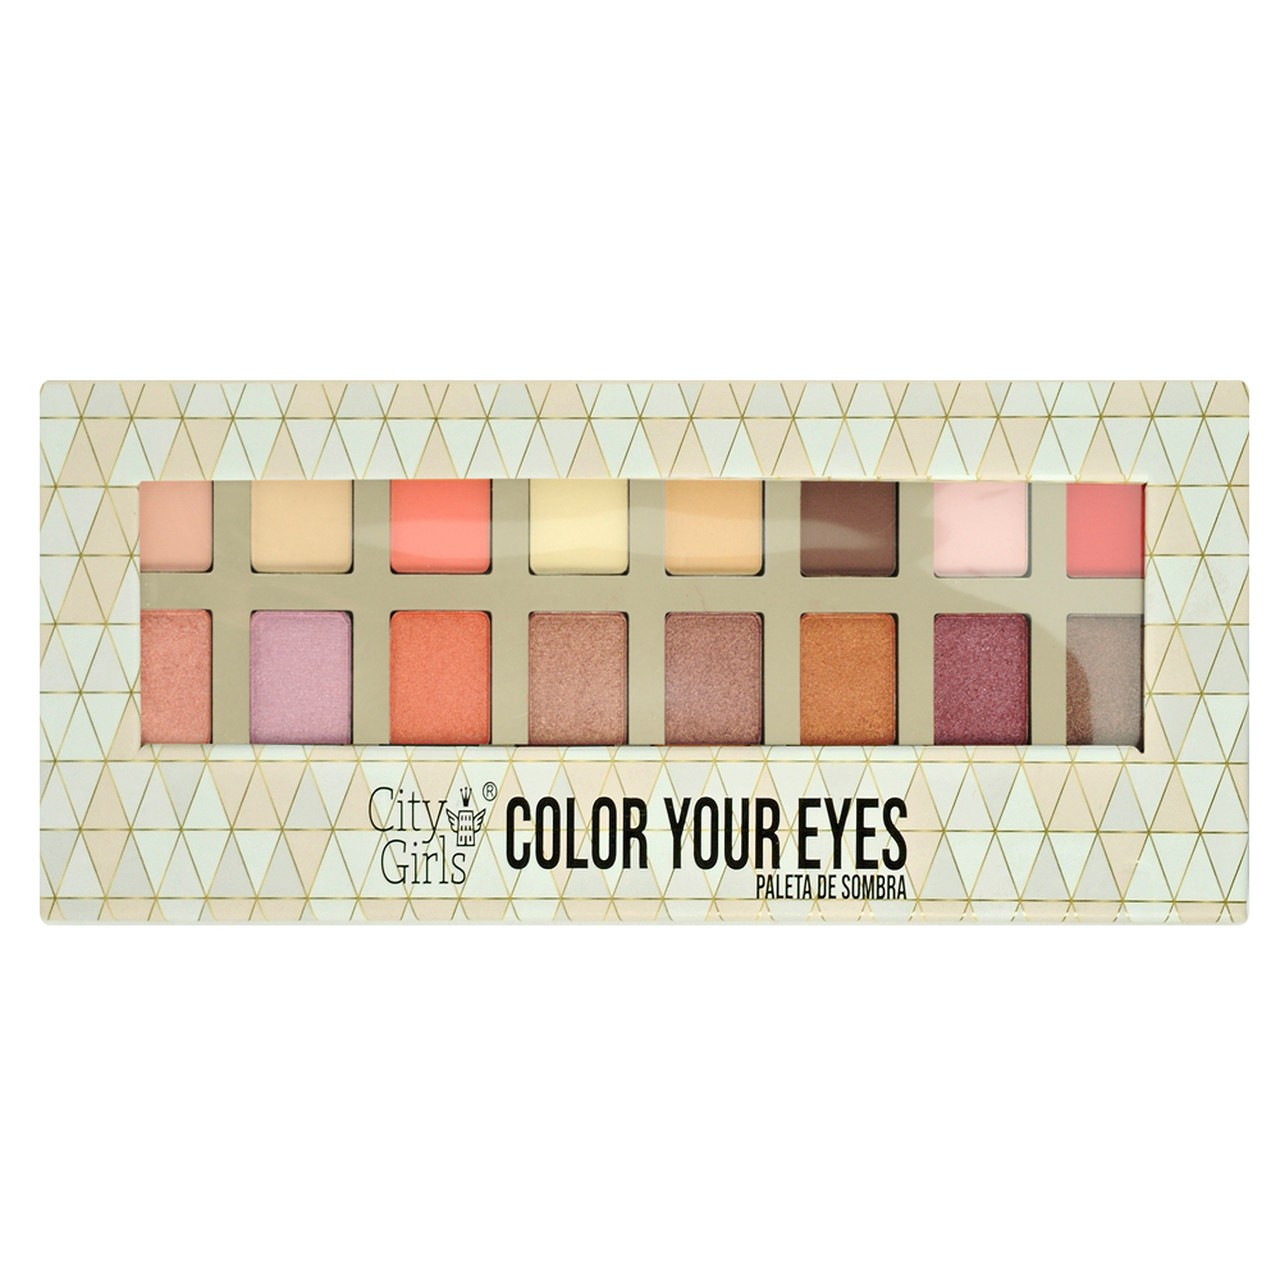 Paleta de Sombras Color your Eyes City Girls